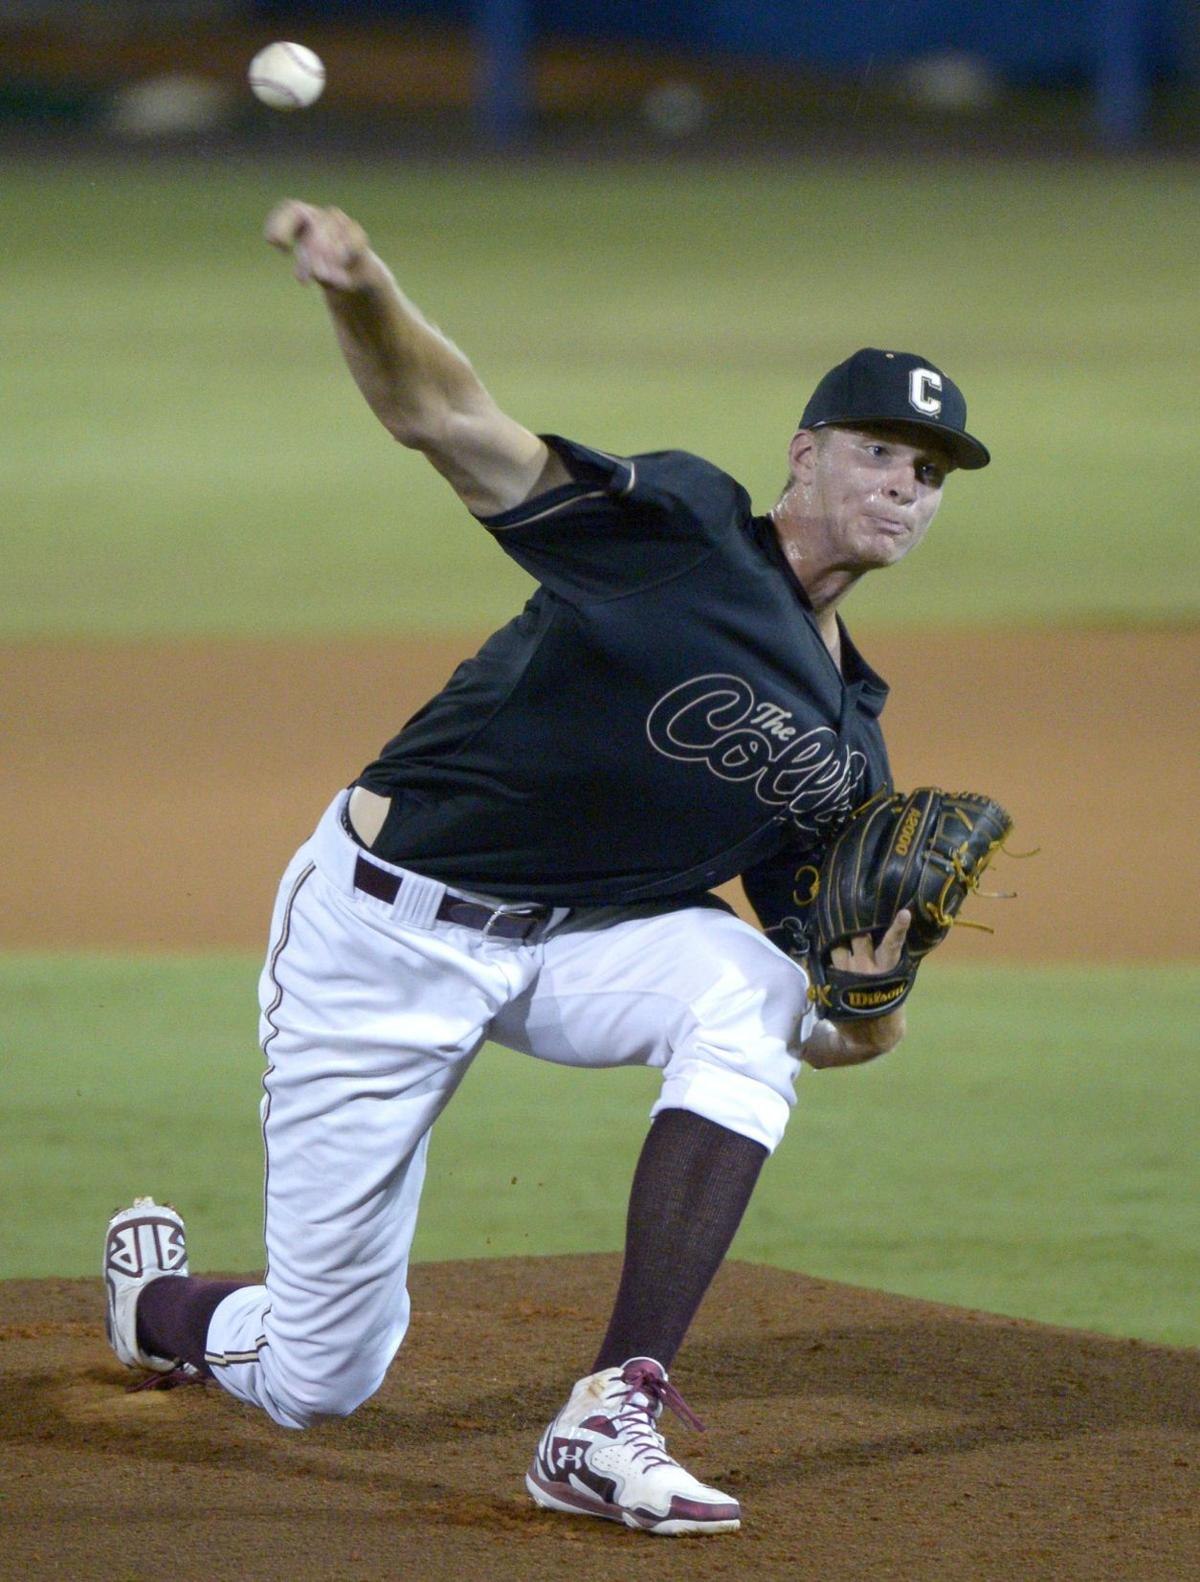 Cougars' Ober out for season